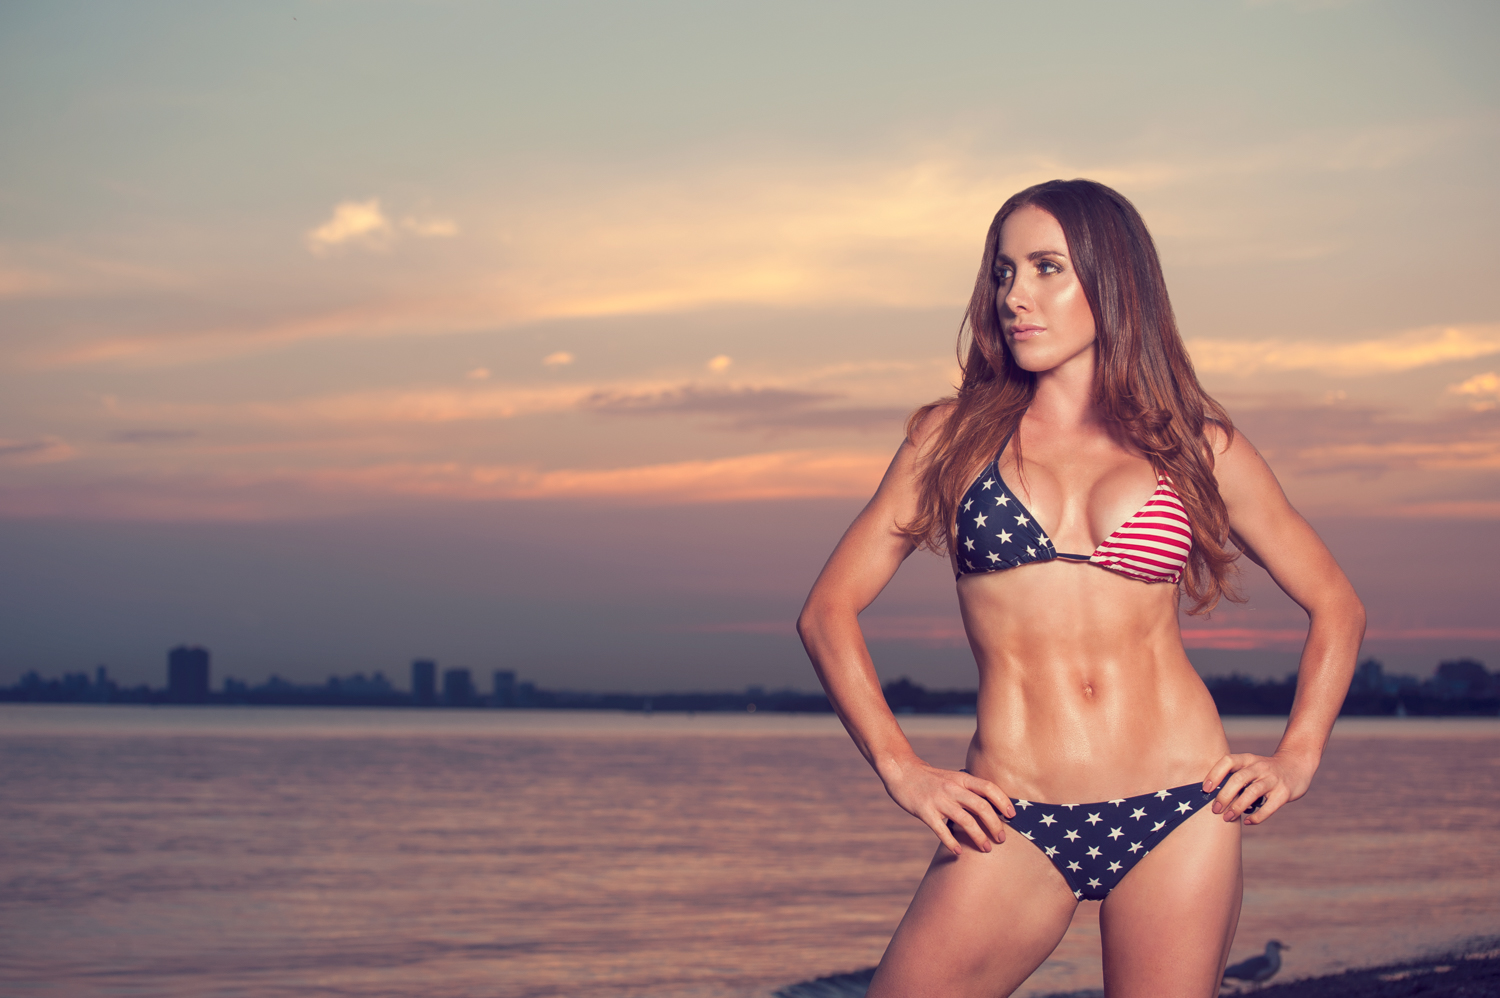 Toronto and Hamilton Fitness Bikini Photographer -Marek Michalek 004-2.jpg